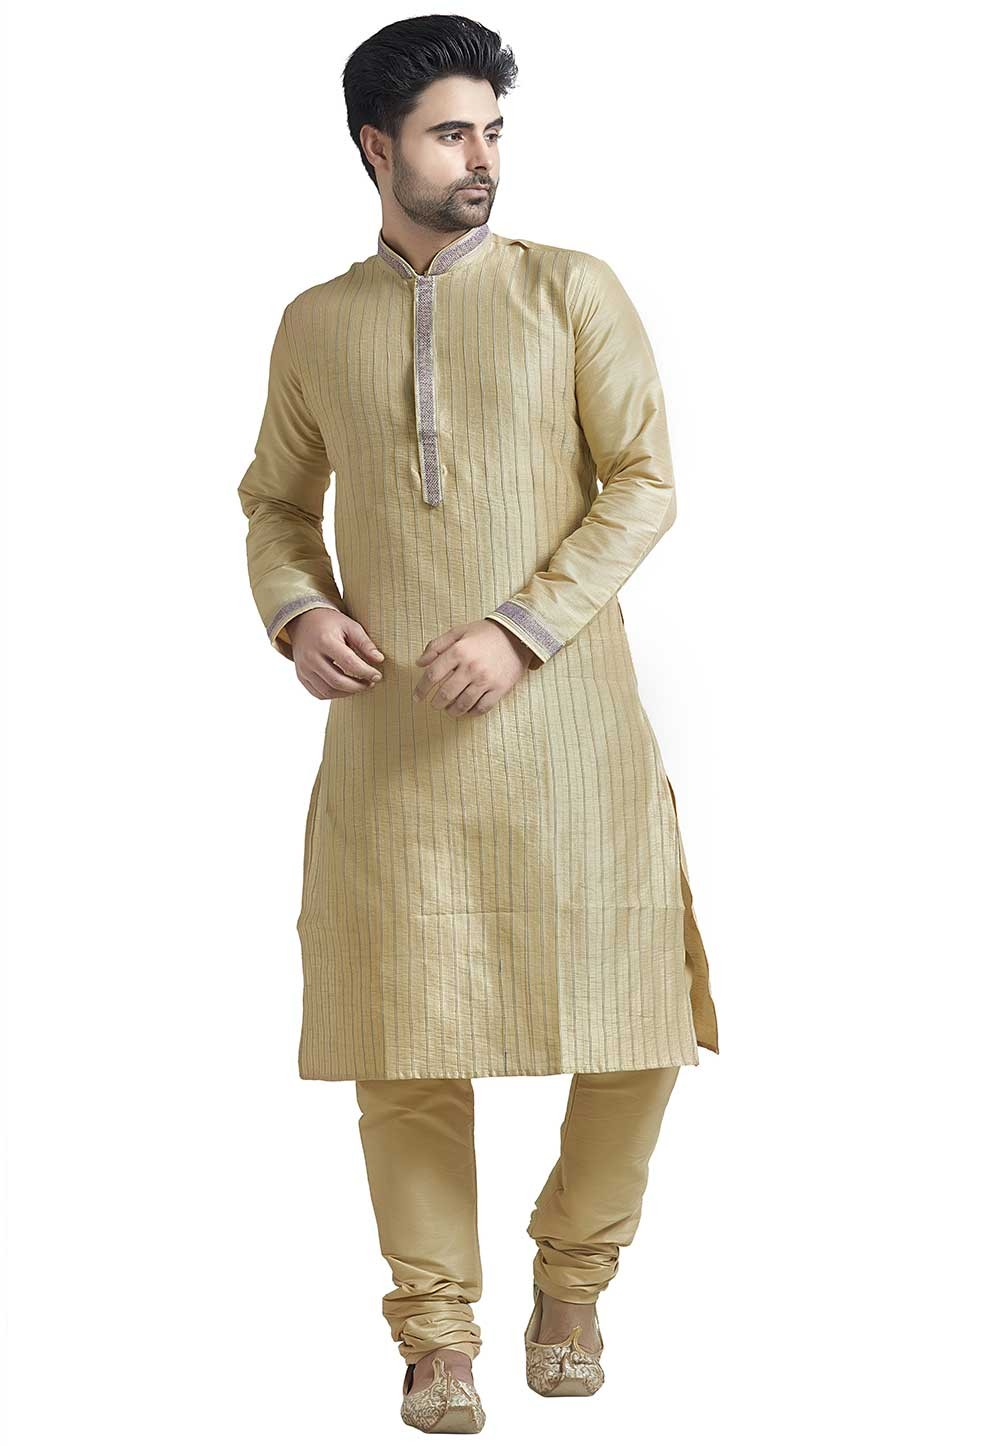 Indian: Buy Kurta Pajama Online in Beige Colour